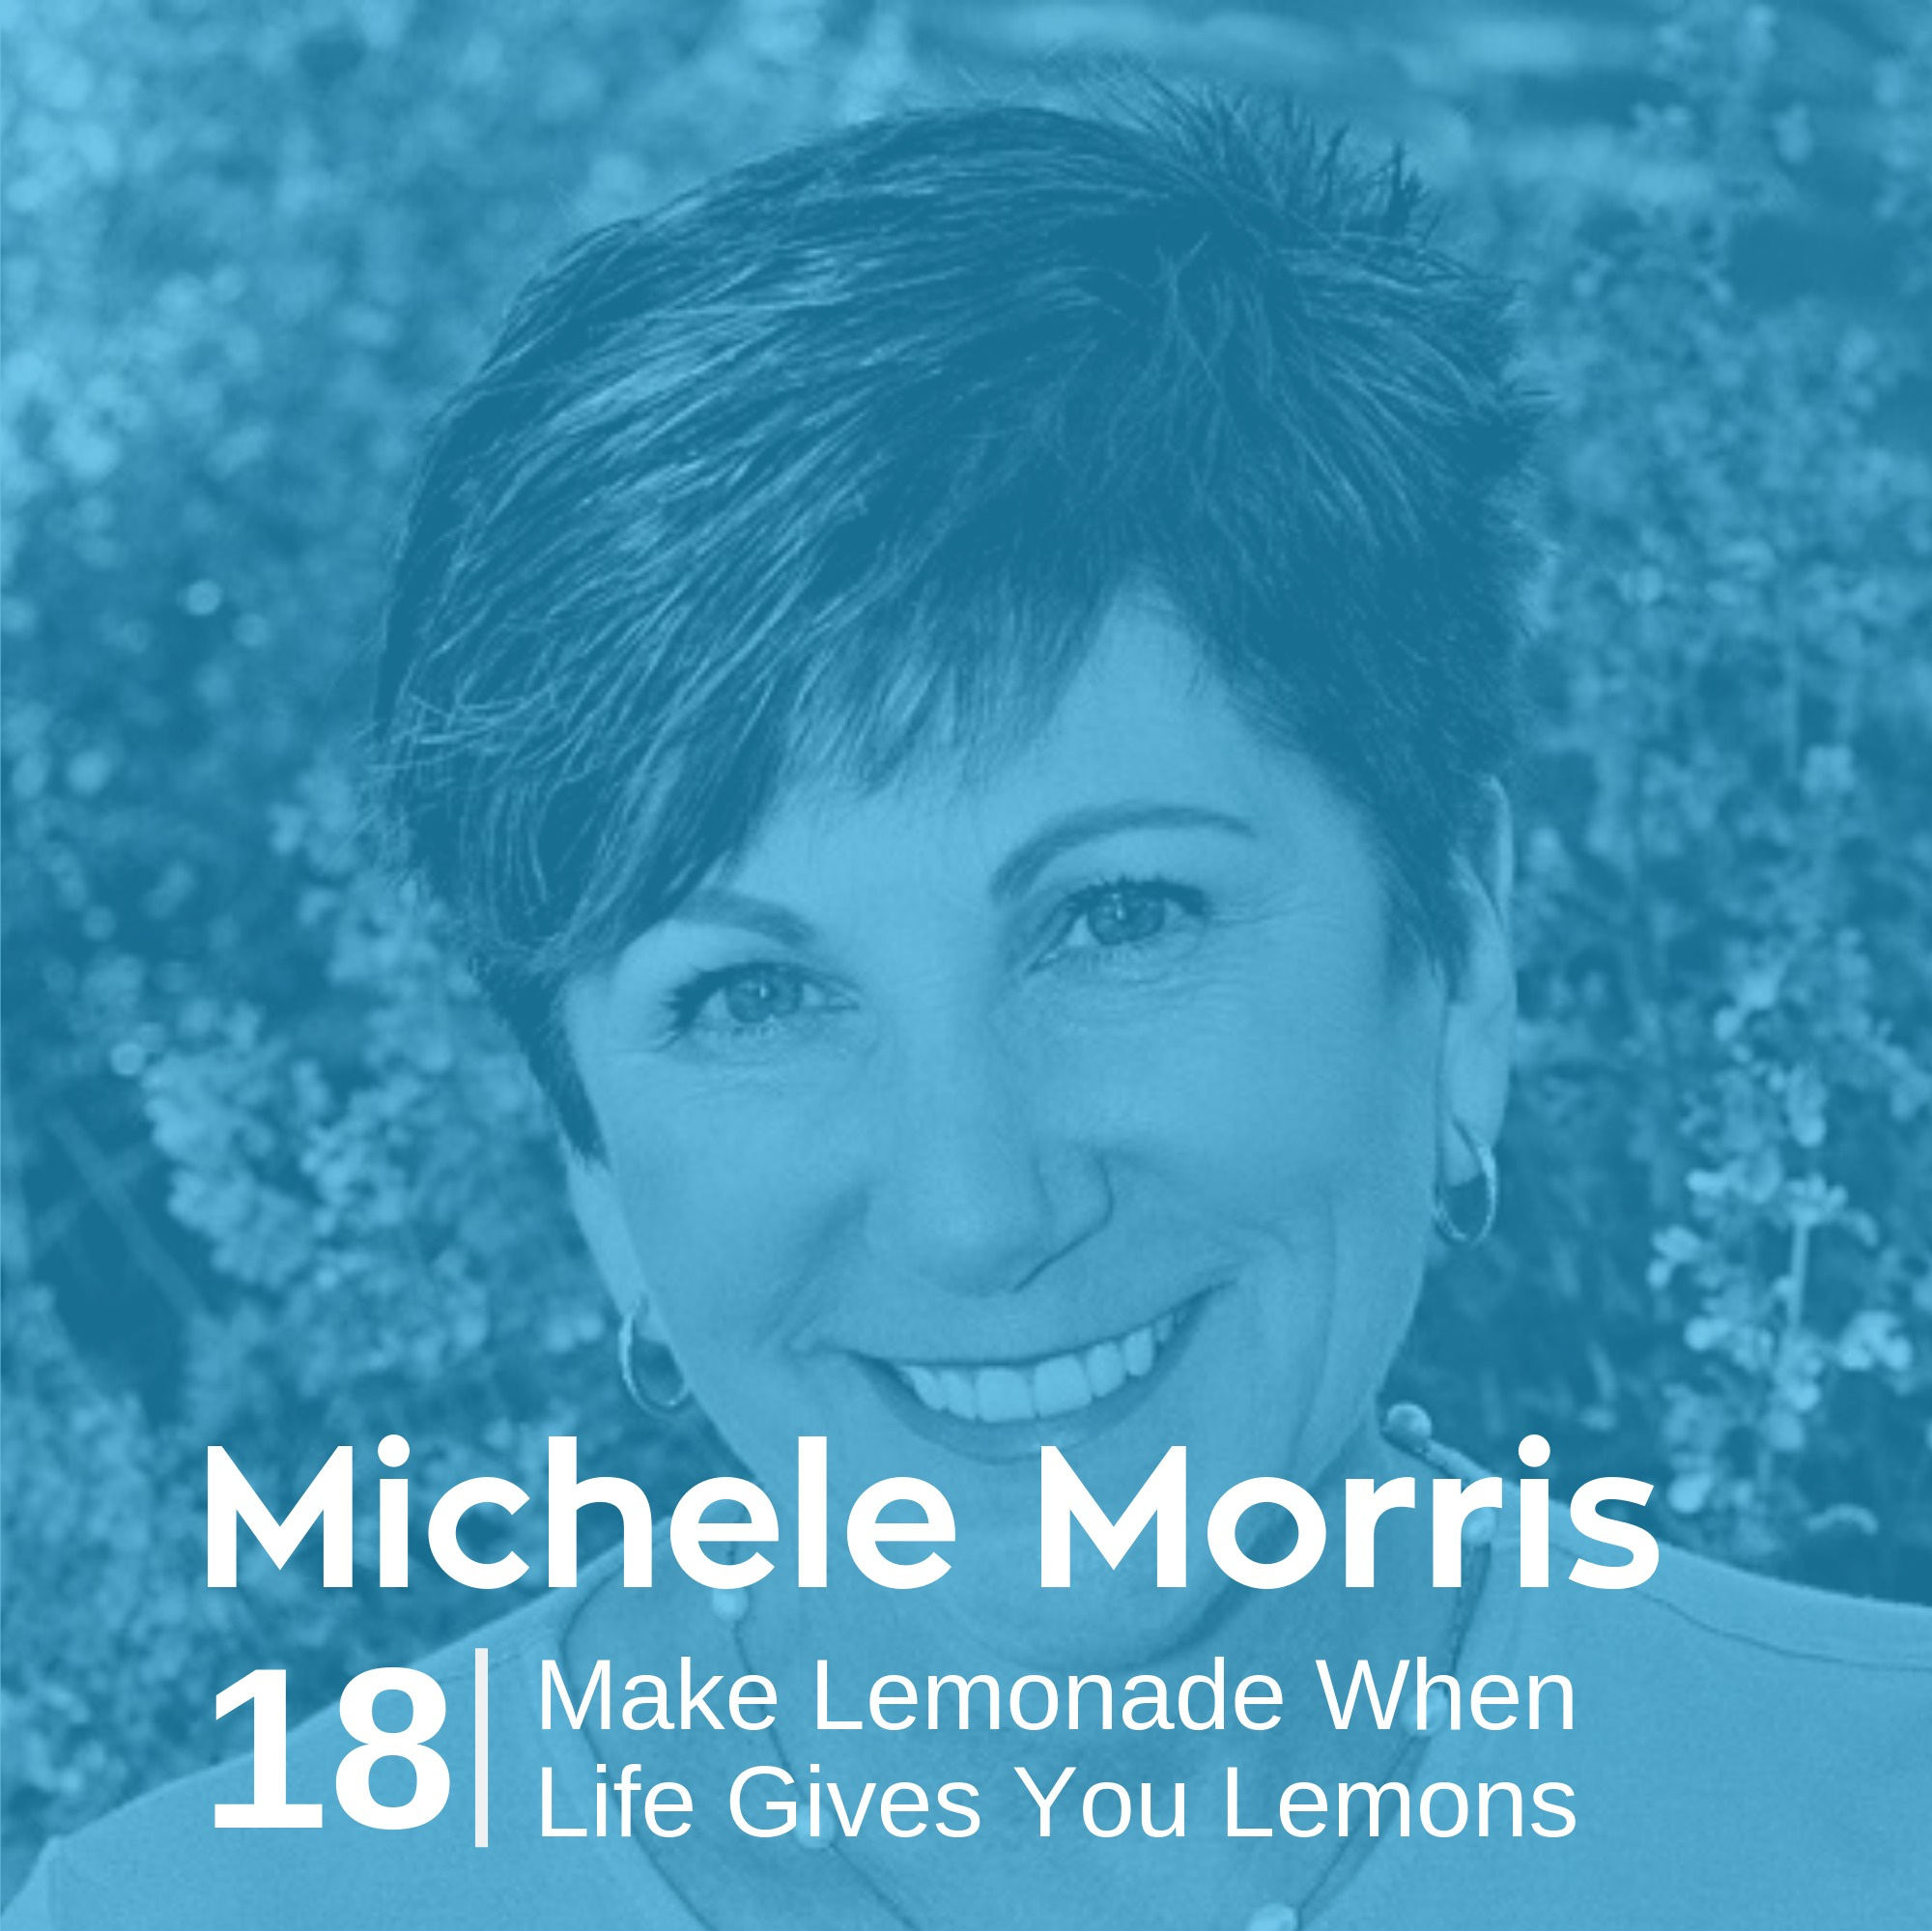 Ep 18. Michele Morris - Make Lemonade When Life Gives You Lemons